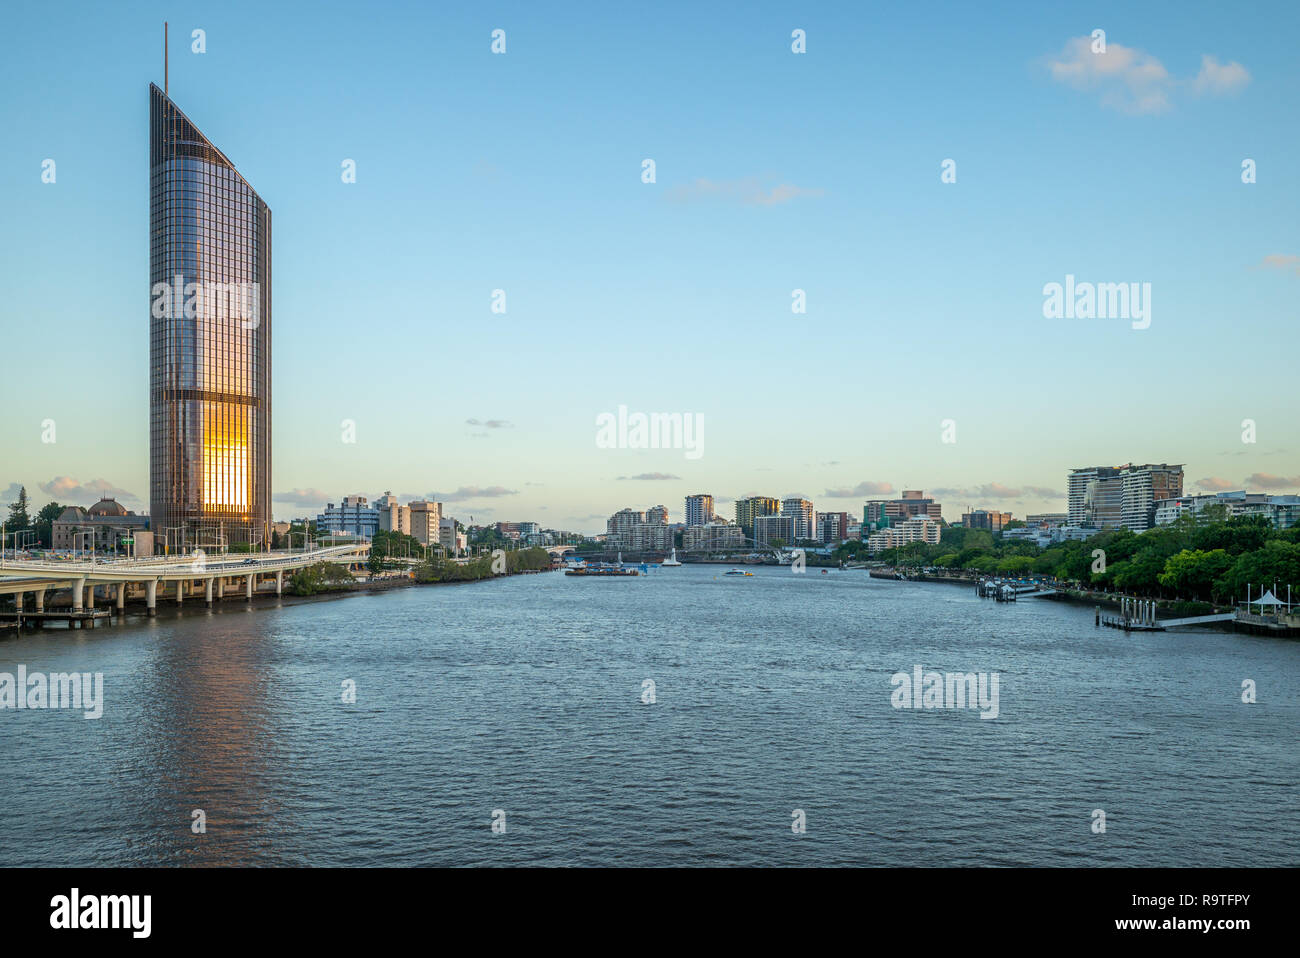 skyline of brisbane city by the brisbane river - Stock Image